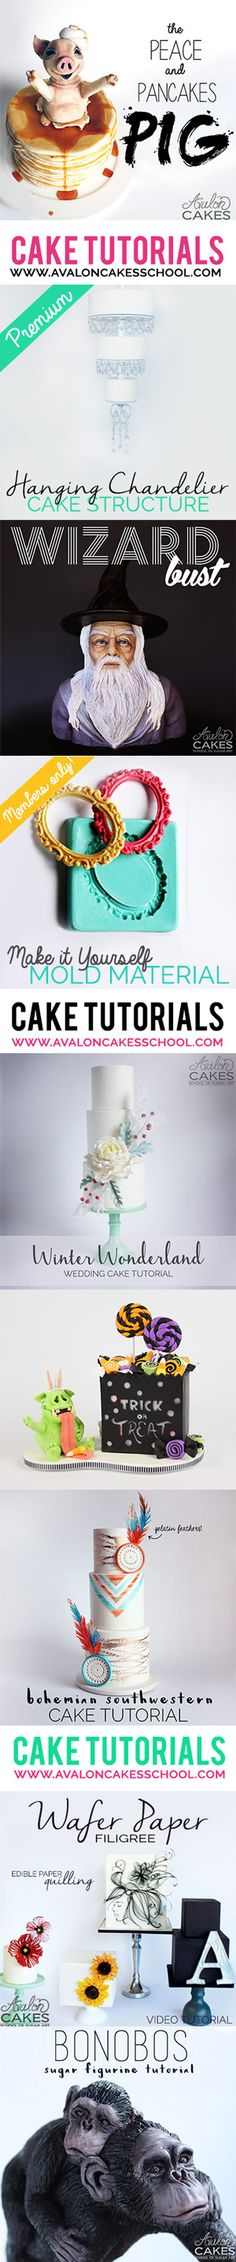 Cake and Sugar Art How-To Tutorials! So much valuable information on how to make tiered wedding cakes, sculpted novelty cakes, busts, figurines, painting, wafer paper and so much more... I kid you not, a must have for cake enthusiasts! www.avaloncakesschool.com